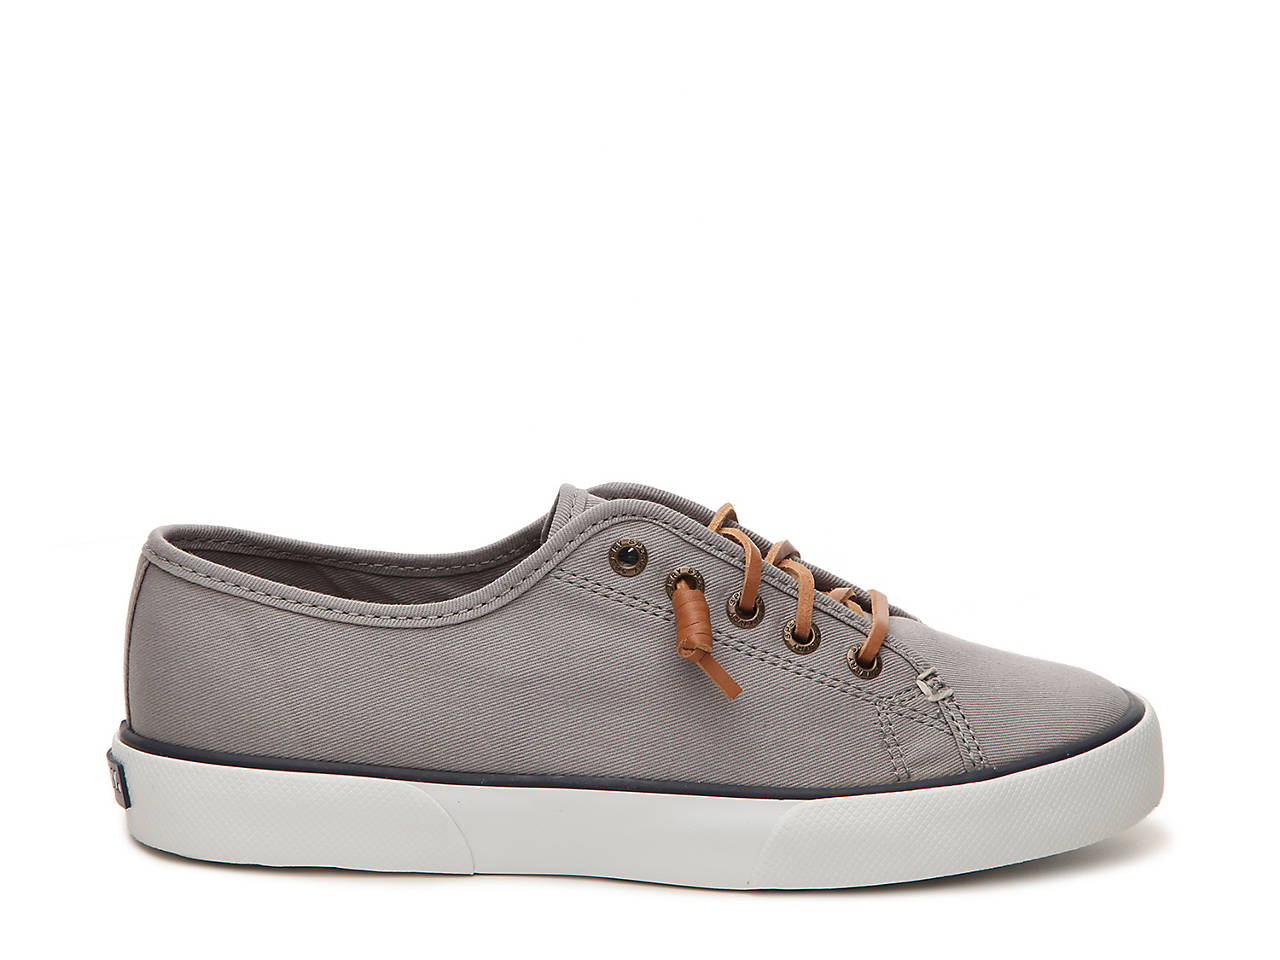 Sperry Top Sider Pier View Slip On Sneaker Womens Shoes Dsw